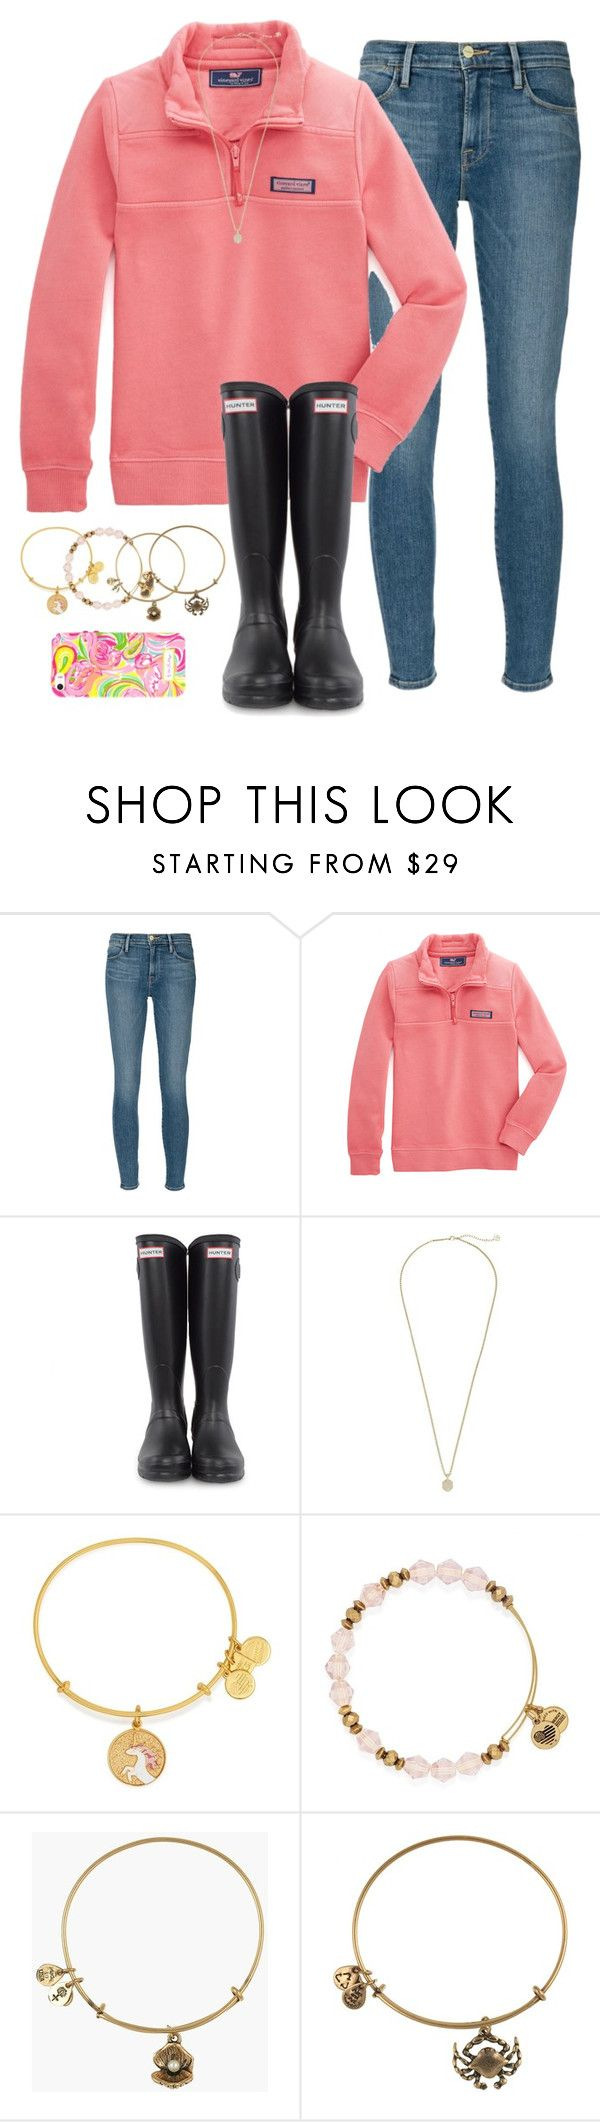 """""""go check out my blog, link in bio"""" by typical-lizzie ❤ liked on Polyvore featuring Frame Denim, Vineyard Vines, Hunter, Kendra Scott, Alex and Ani and Lilly Pulitzer"""